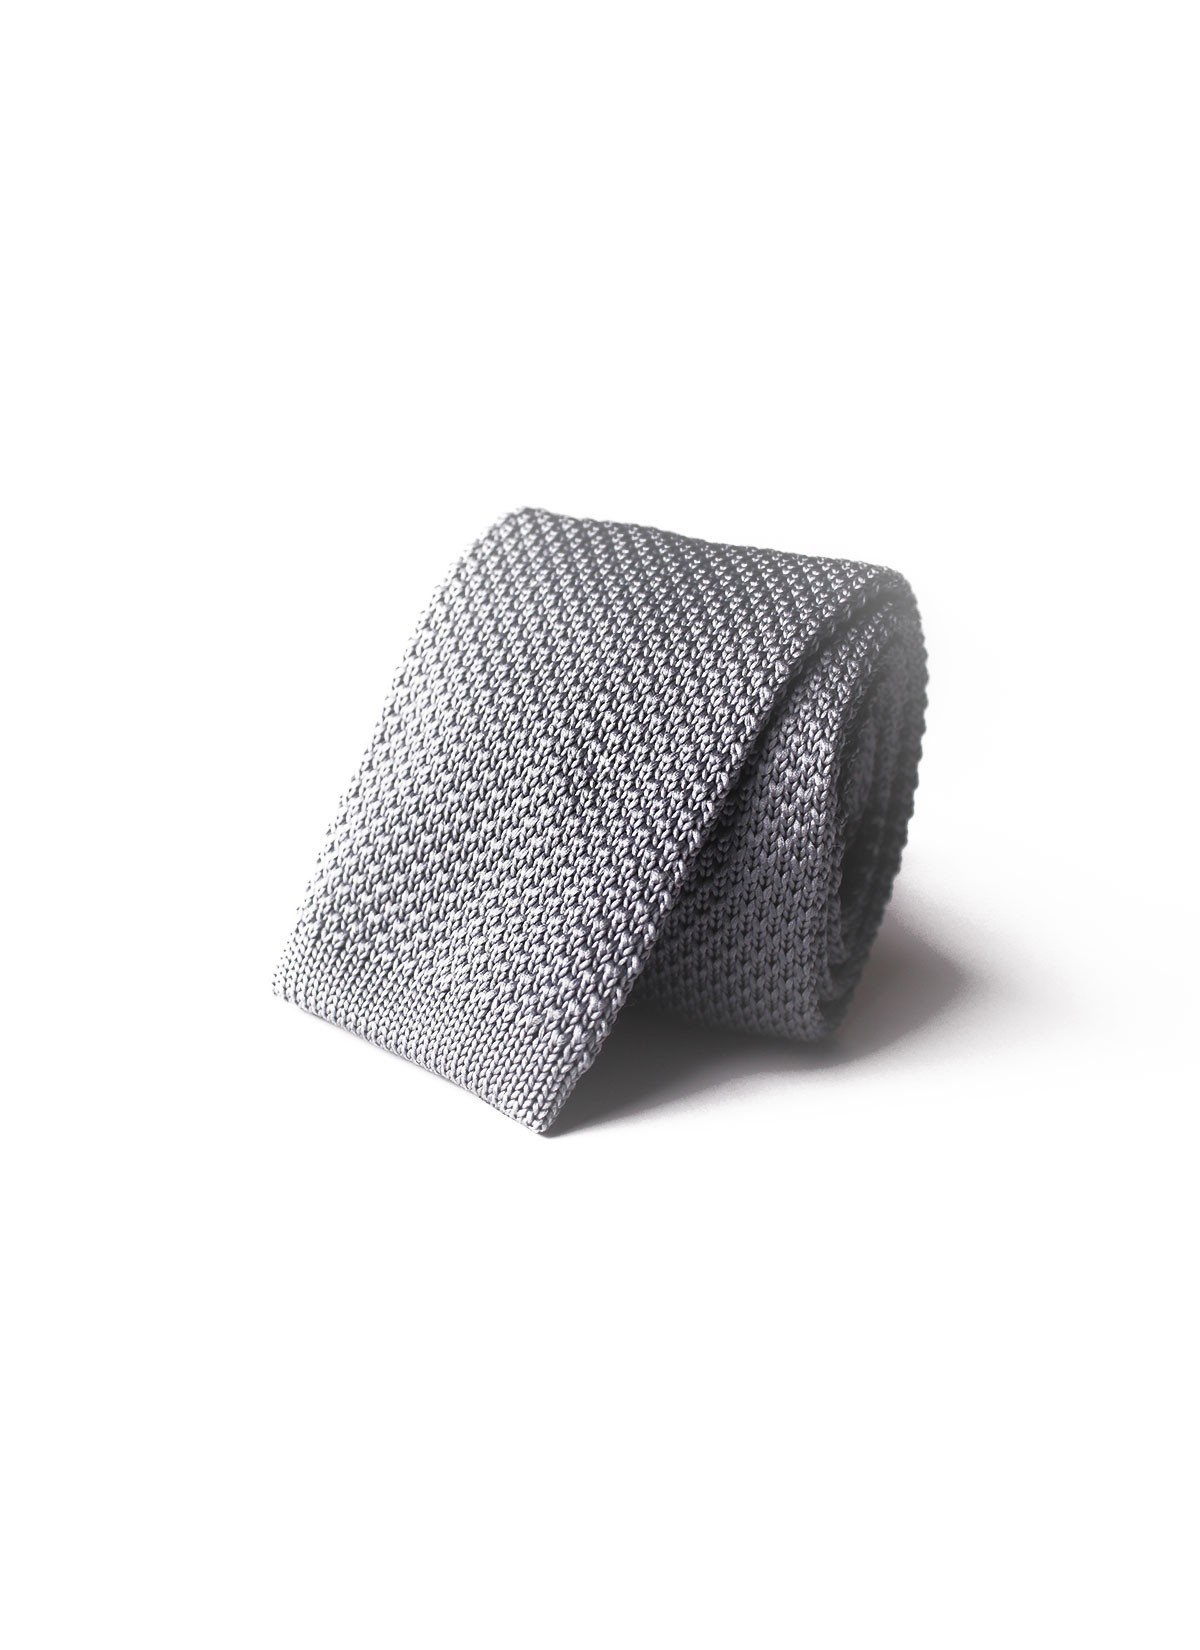 IRIDESCENT GRAY KNITTED TIE EMMANUELLE KHANH